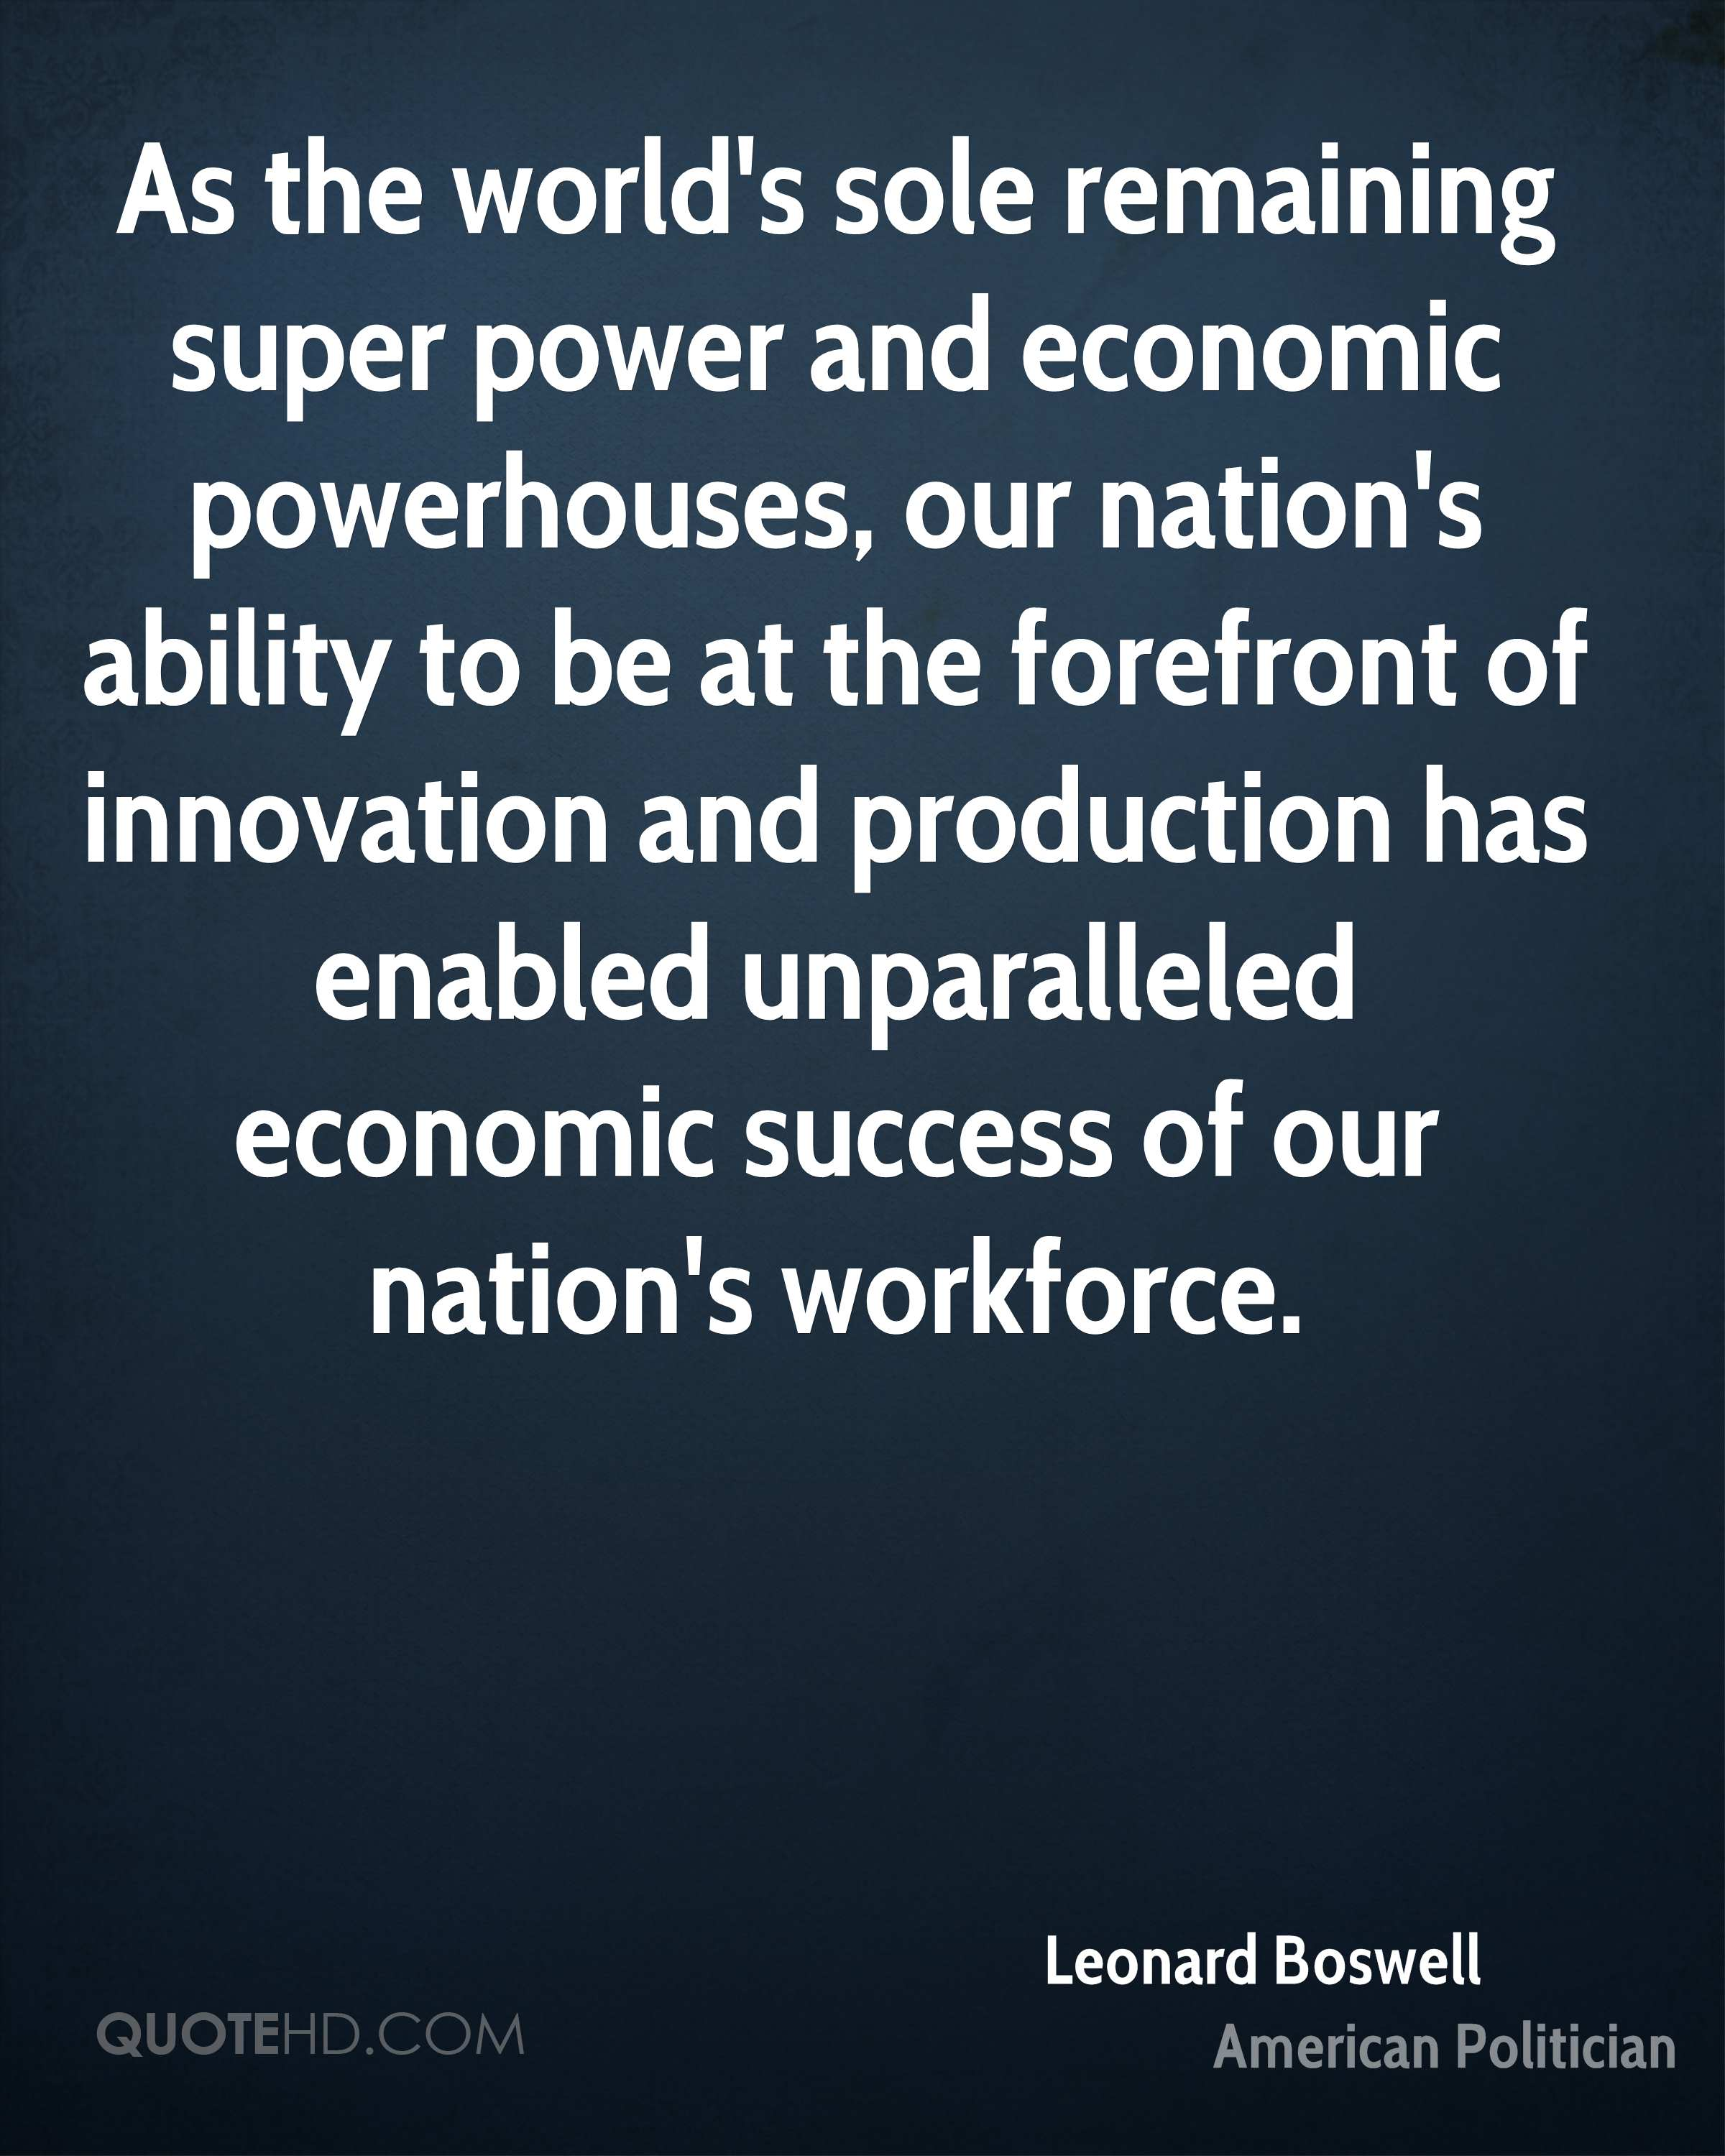 As the world's sole remaining super power and economic powerhouses, our nation's ability to be at the forefront of innovation and production has enabled unparalleled economic success of our nation's workforce.